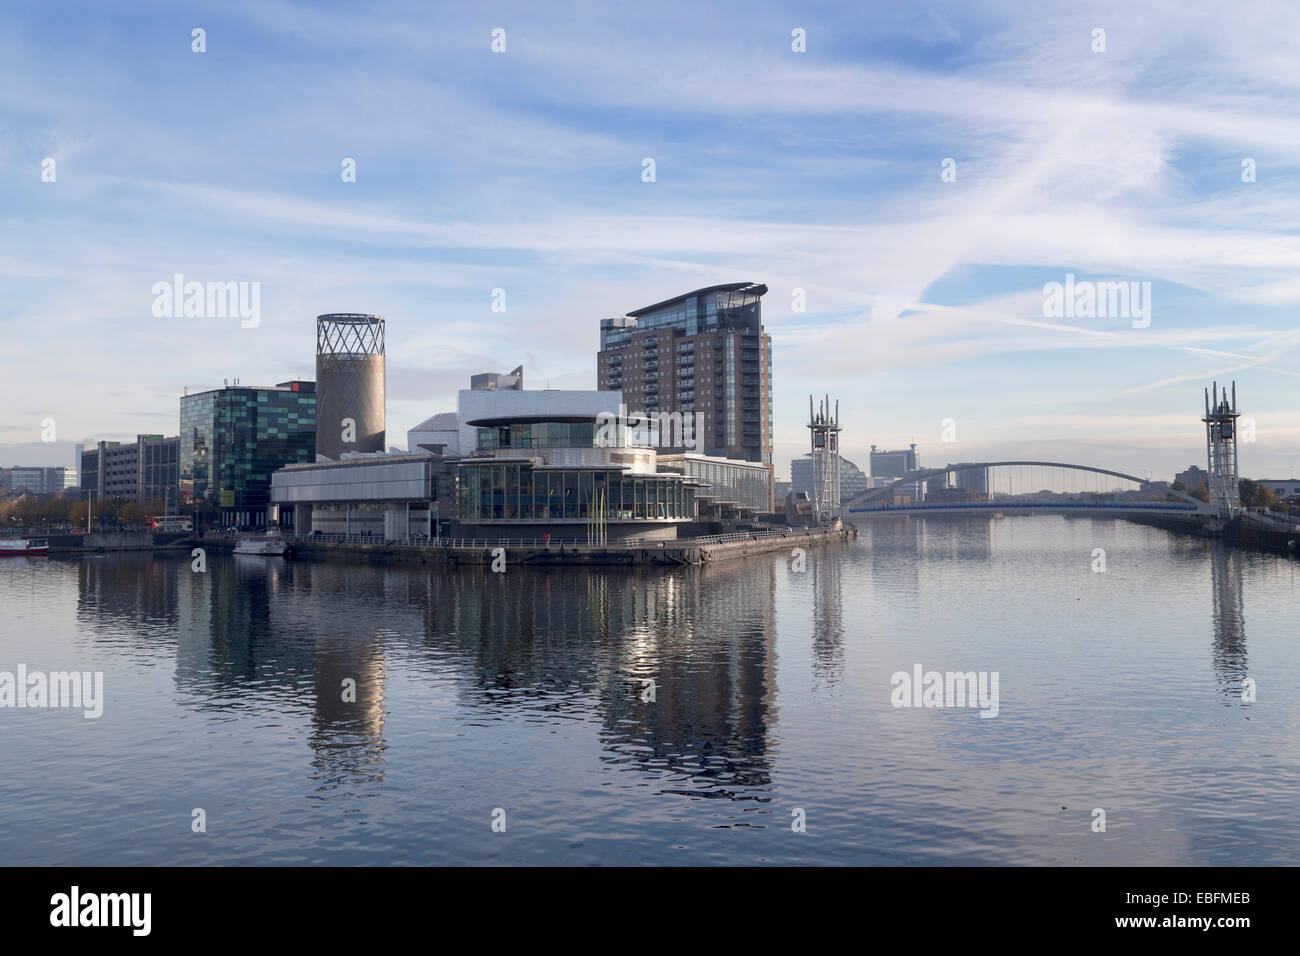 UK, Manchester, view towards the Quays Theatre and Lowry Complex at Salford. - Stock Image